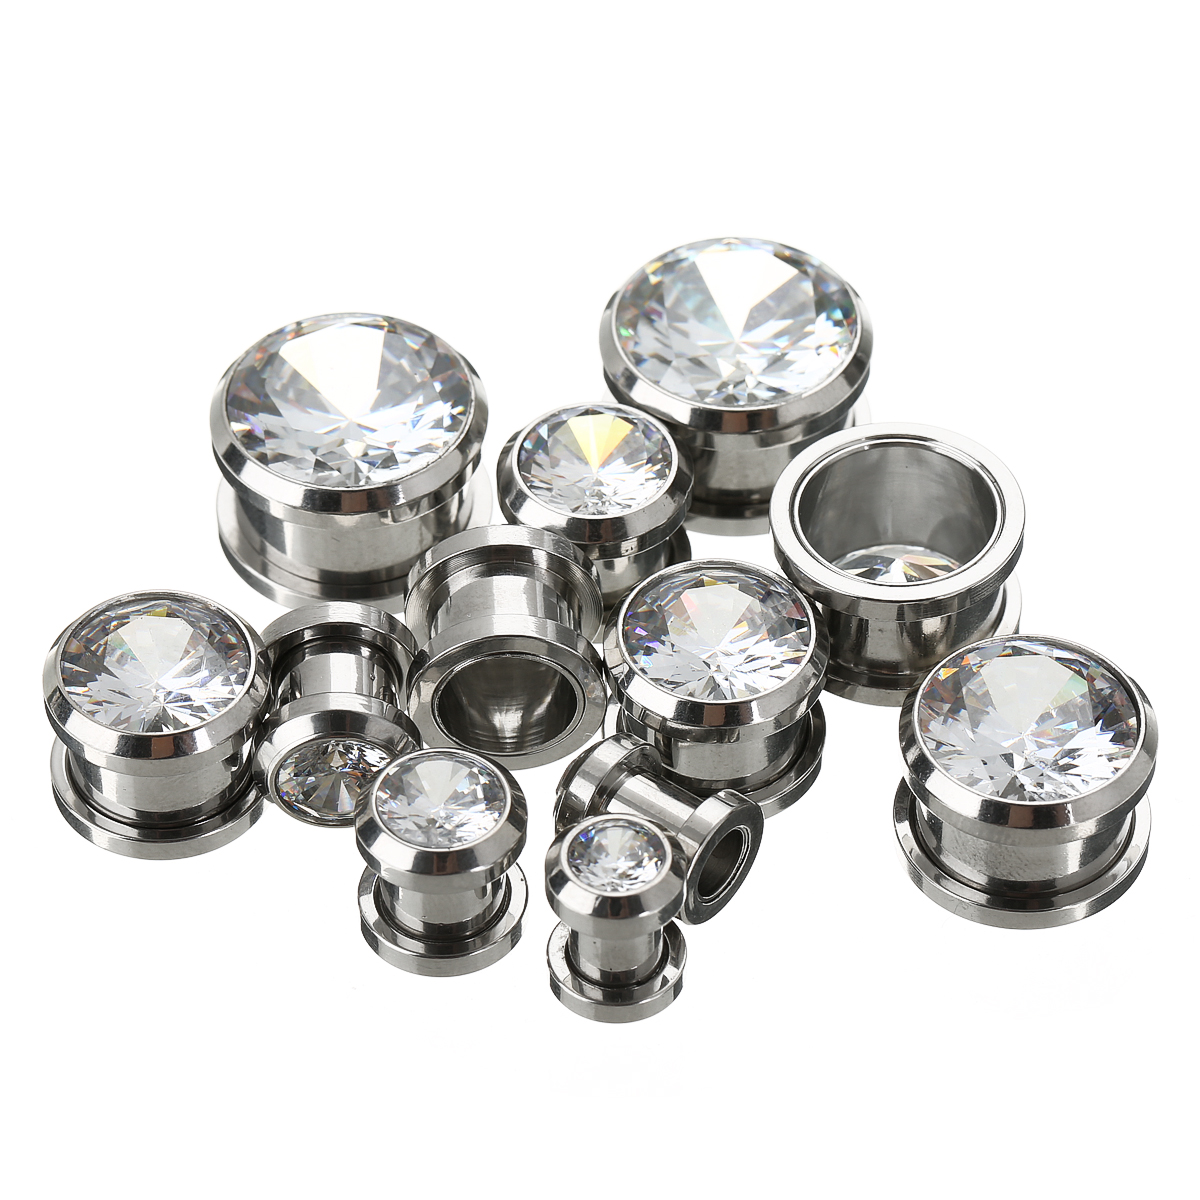 1 Pair 6-16mm Crystal Ear Tunnels Plug Shellhard Vintage Stainless Steel Screw Fix Flesh Tunnels CZ Ear Expanders Body Jewelry